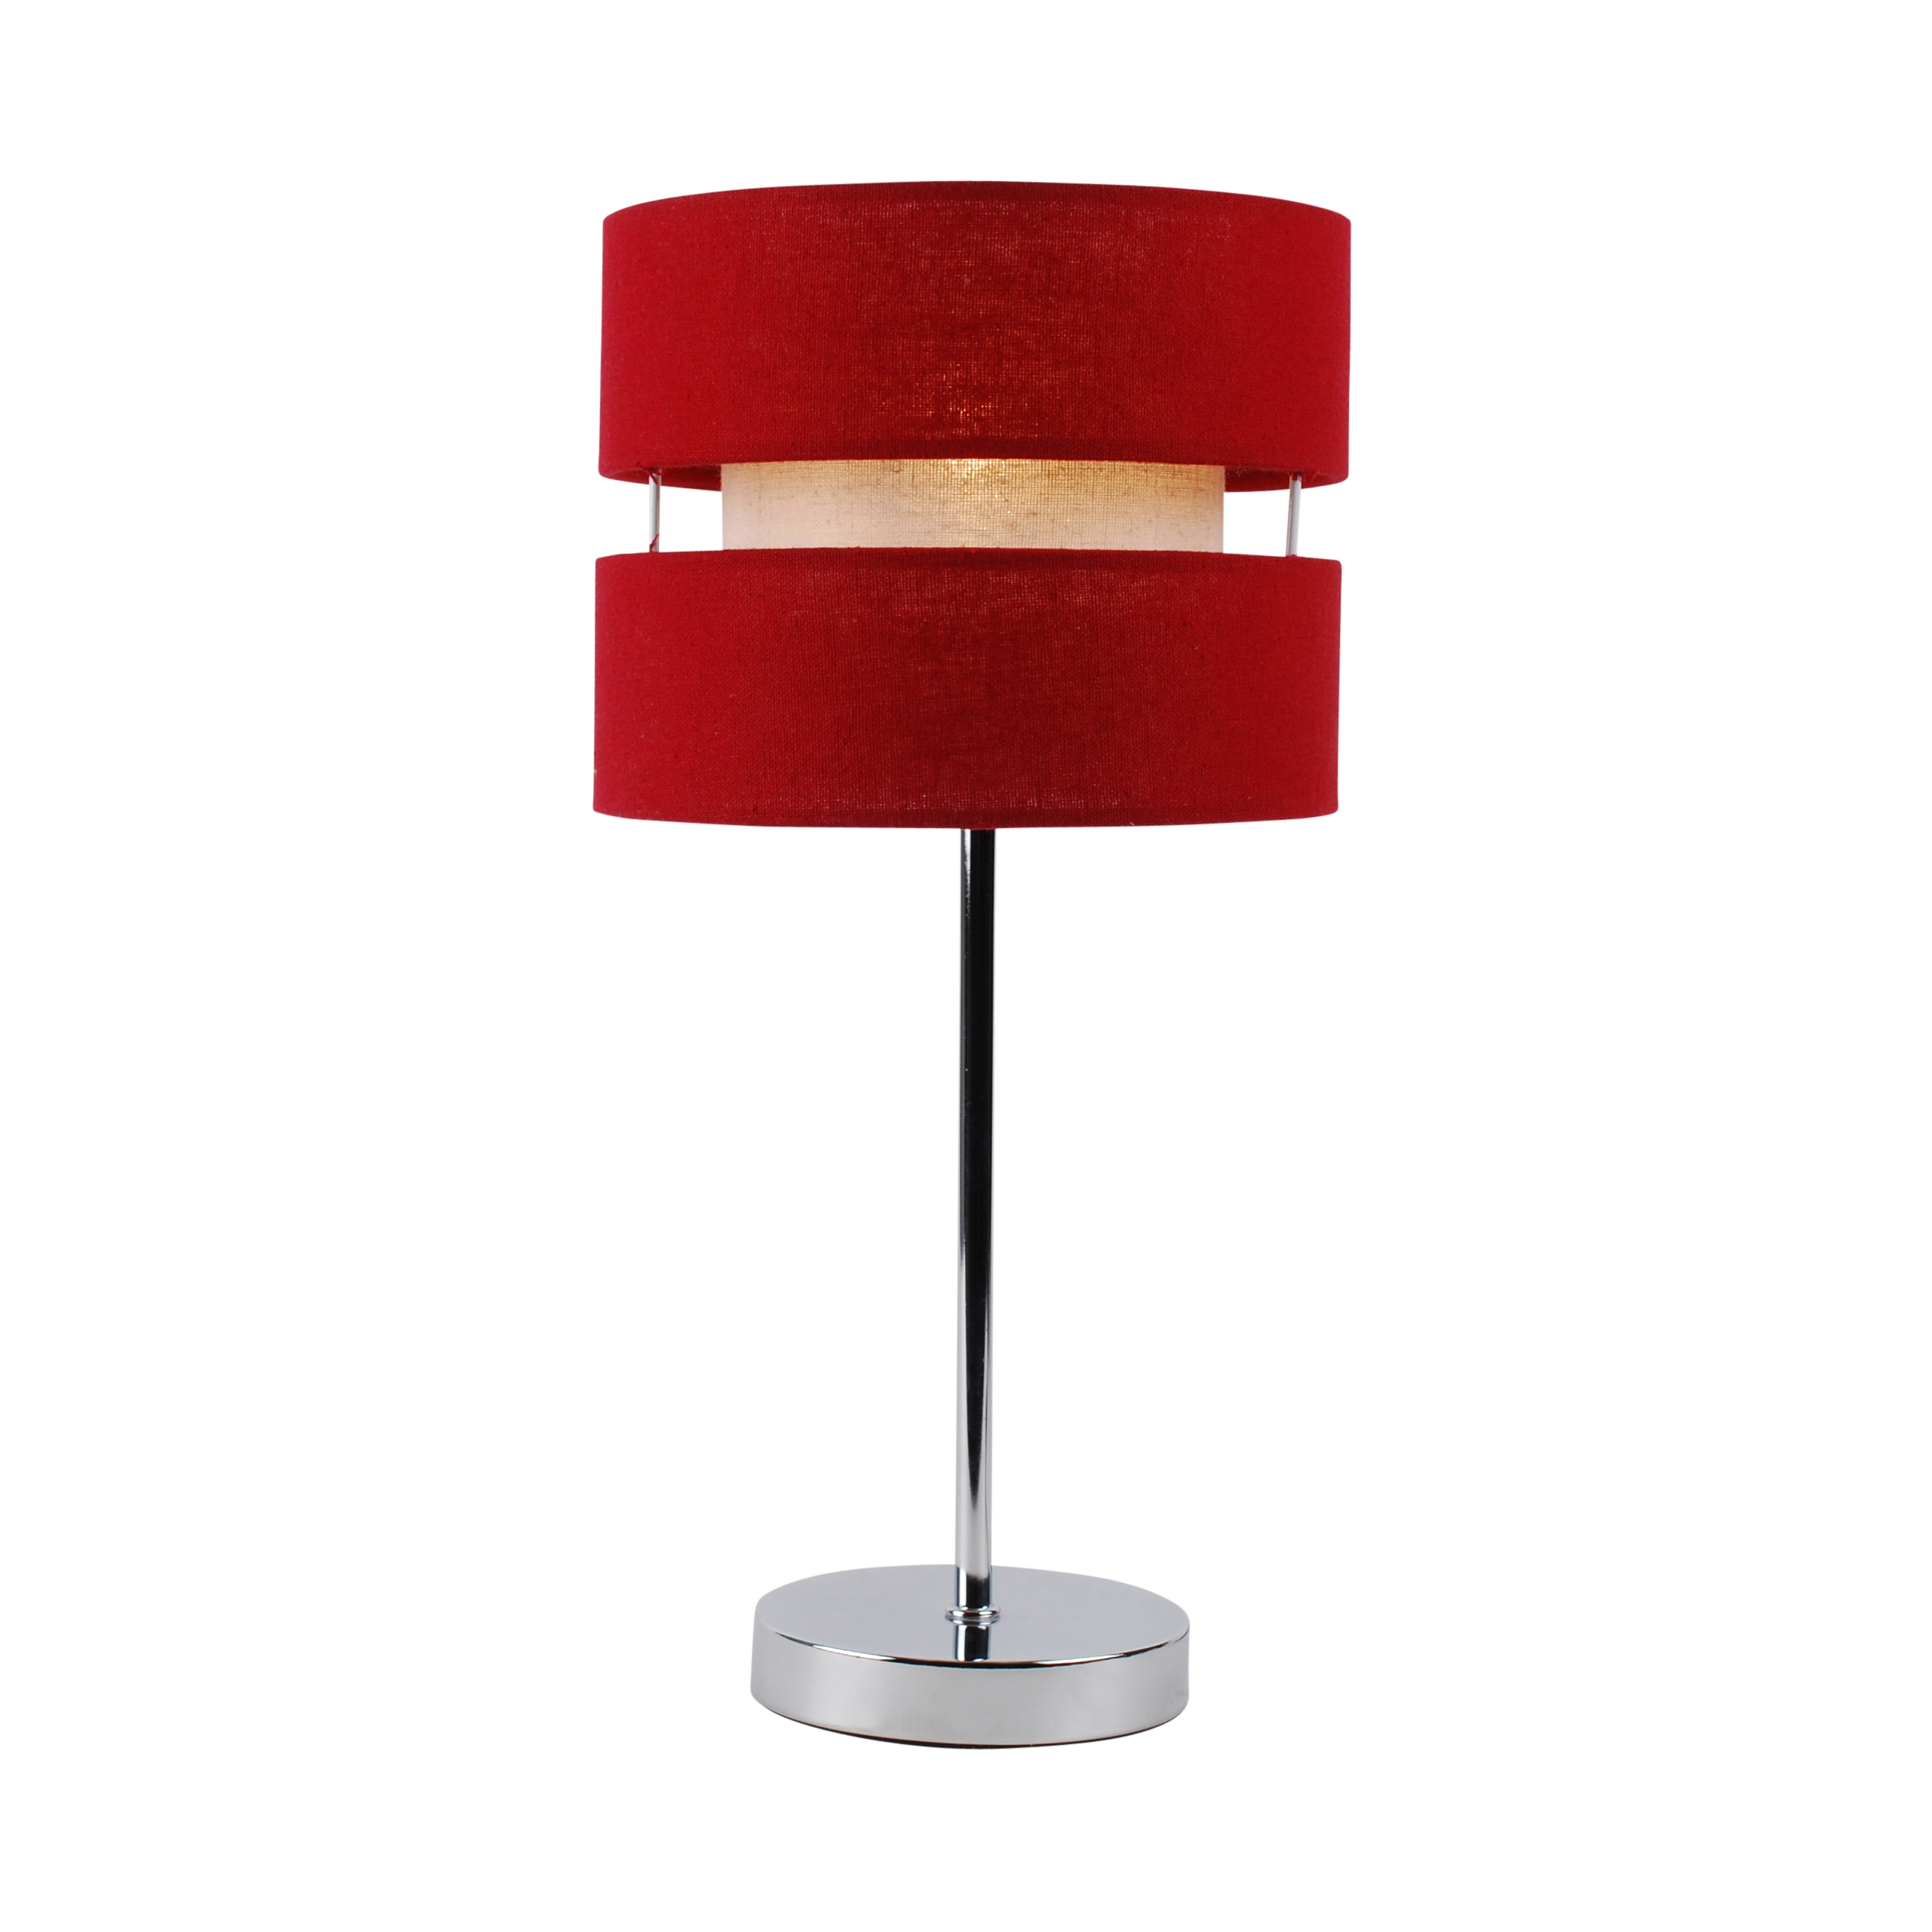 Red Bedside Lamps Modern Chrome Bedside Table Lamp Light With Red Cotton